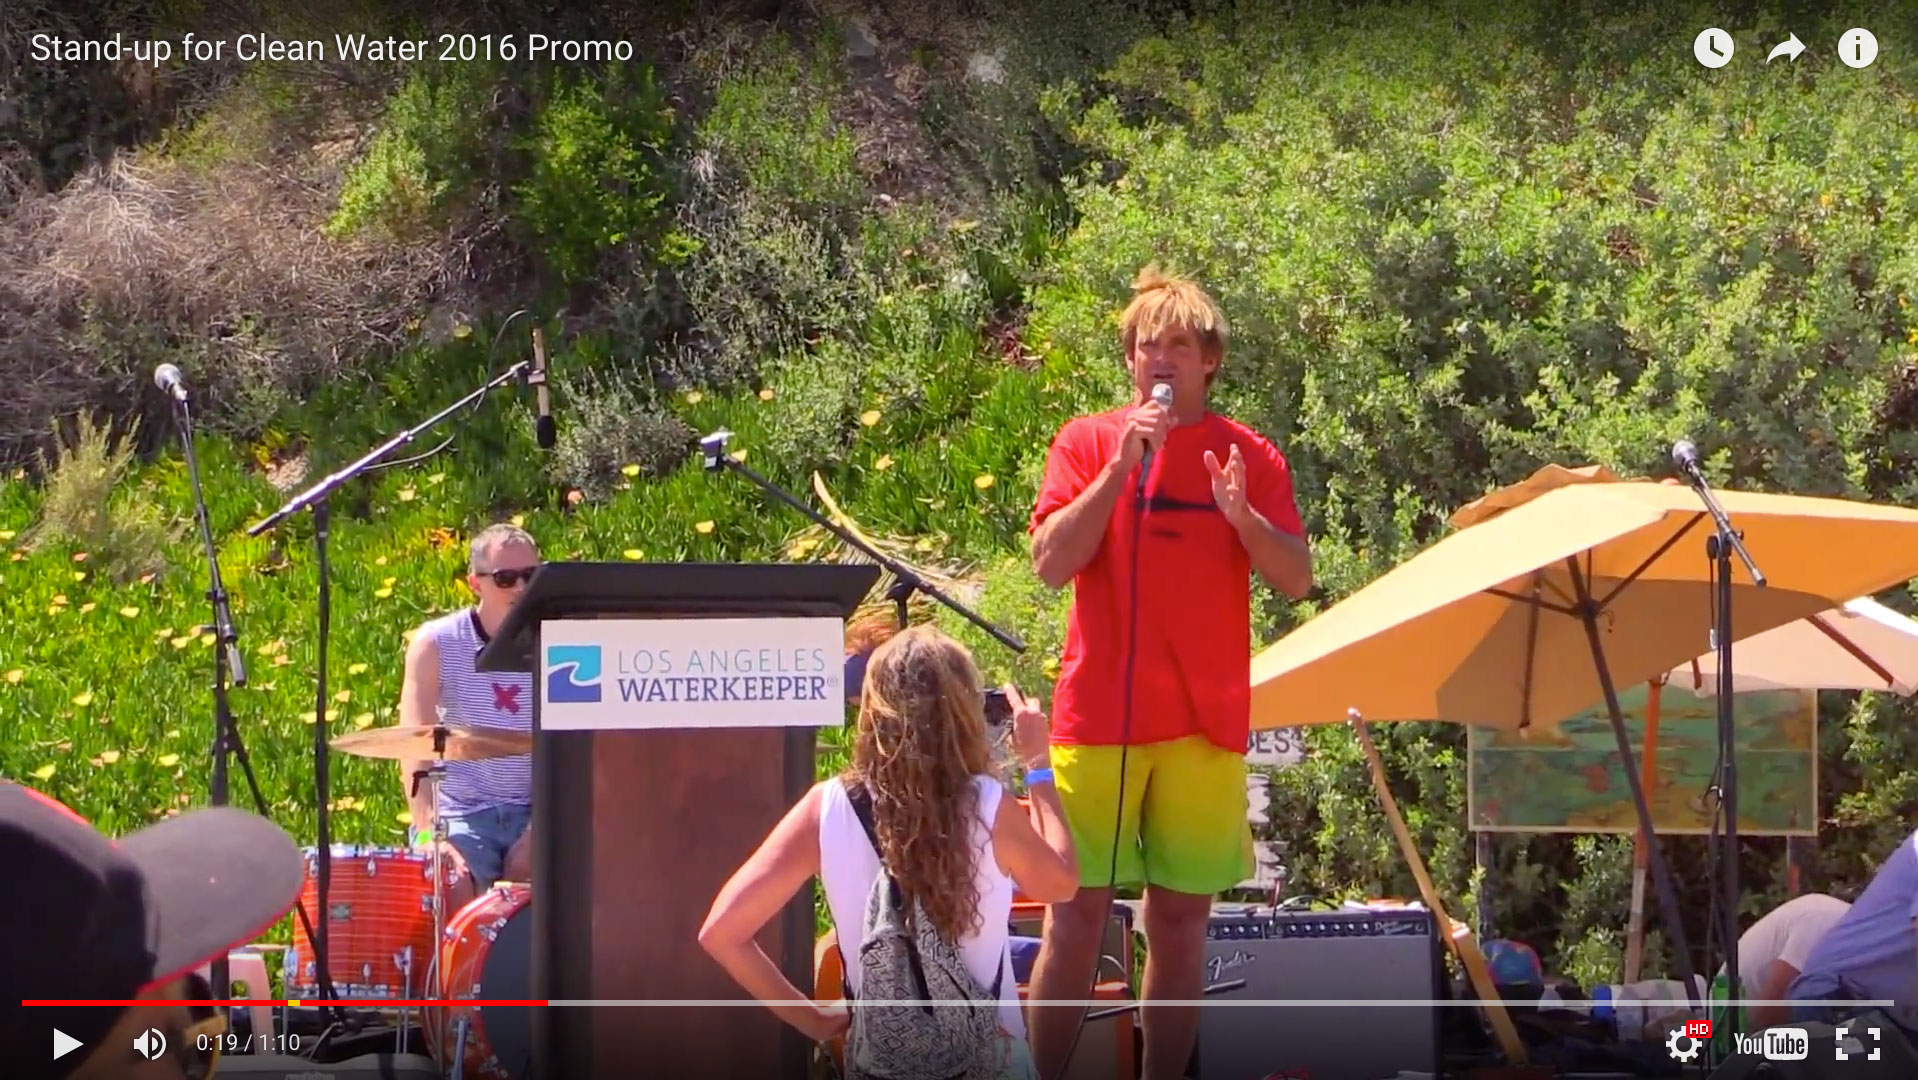 5th Annual Stand Up for Clean Water Event by LA Waterkeeper